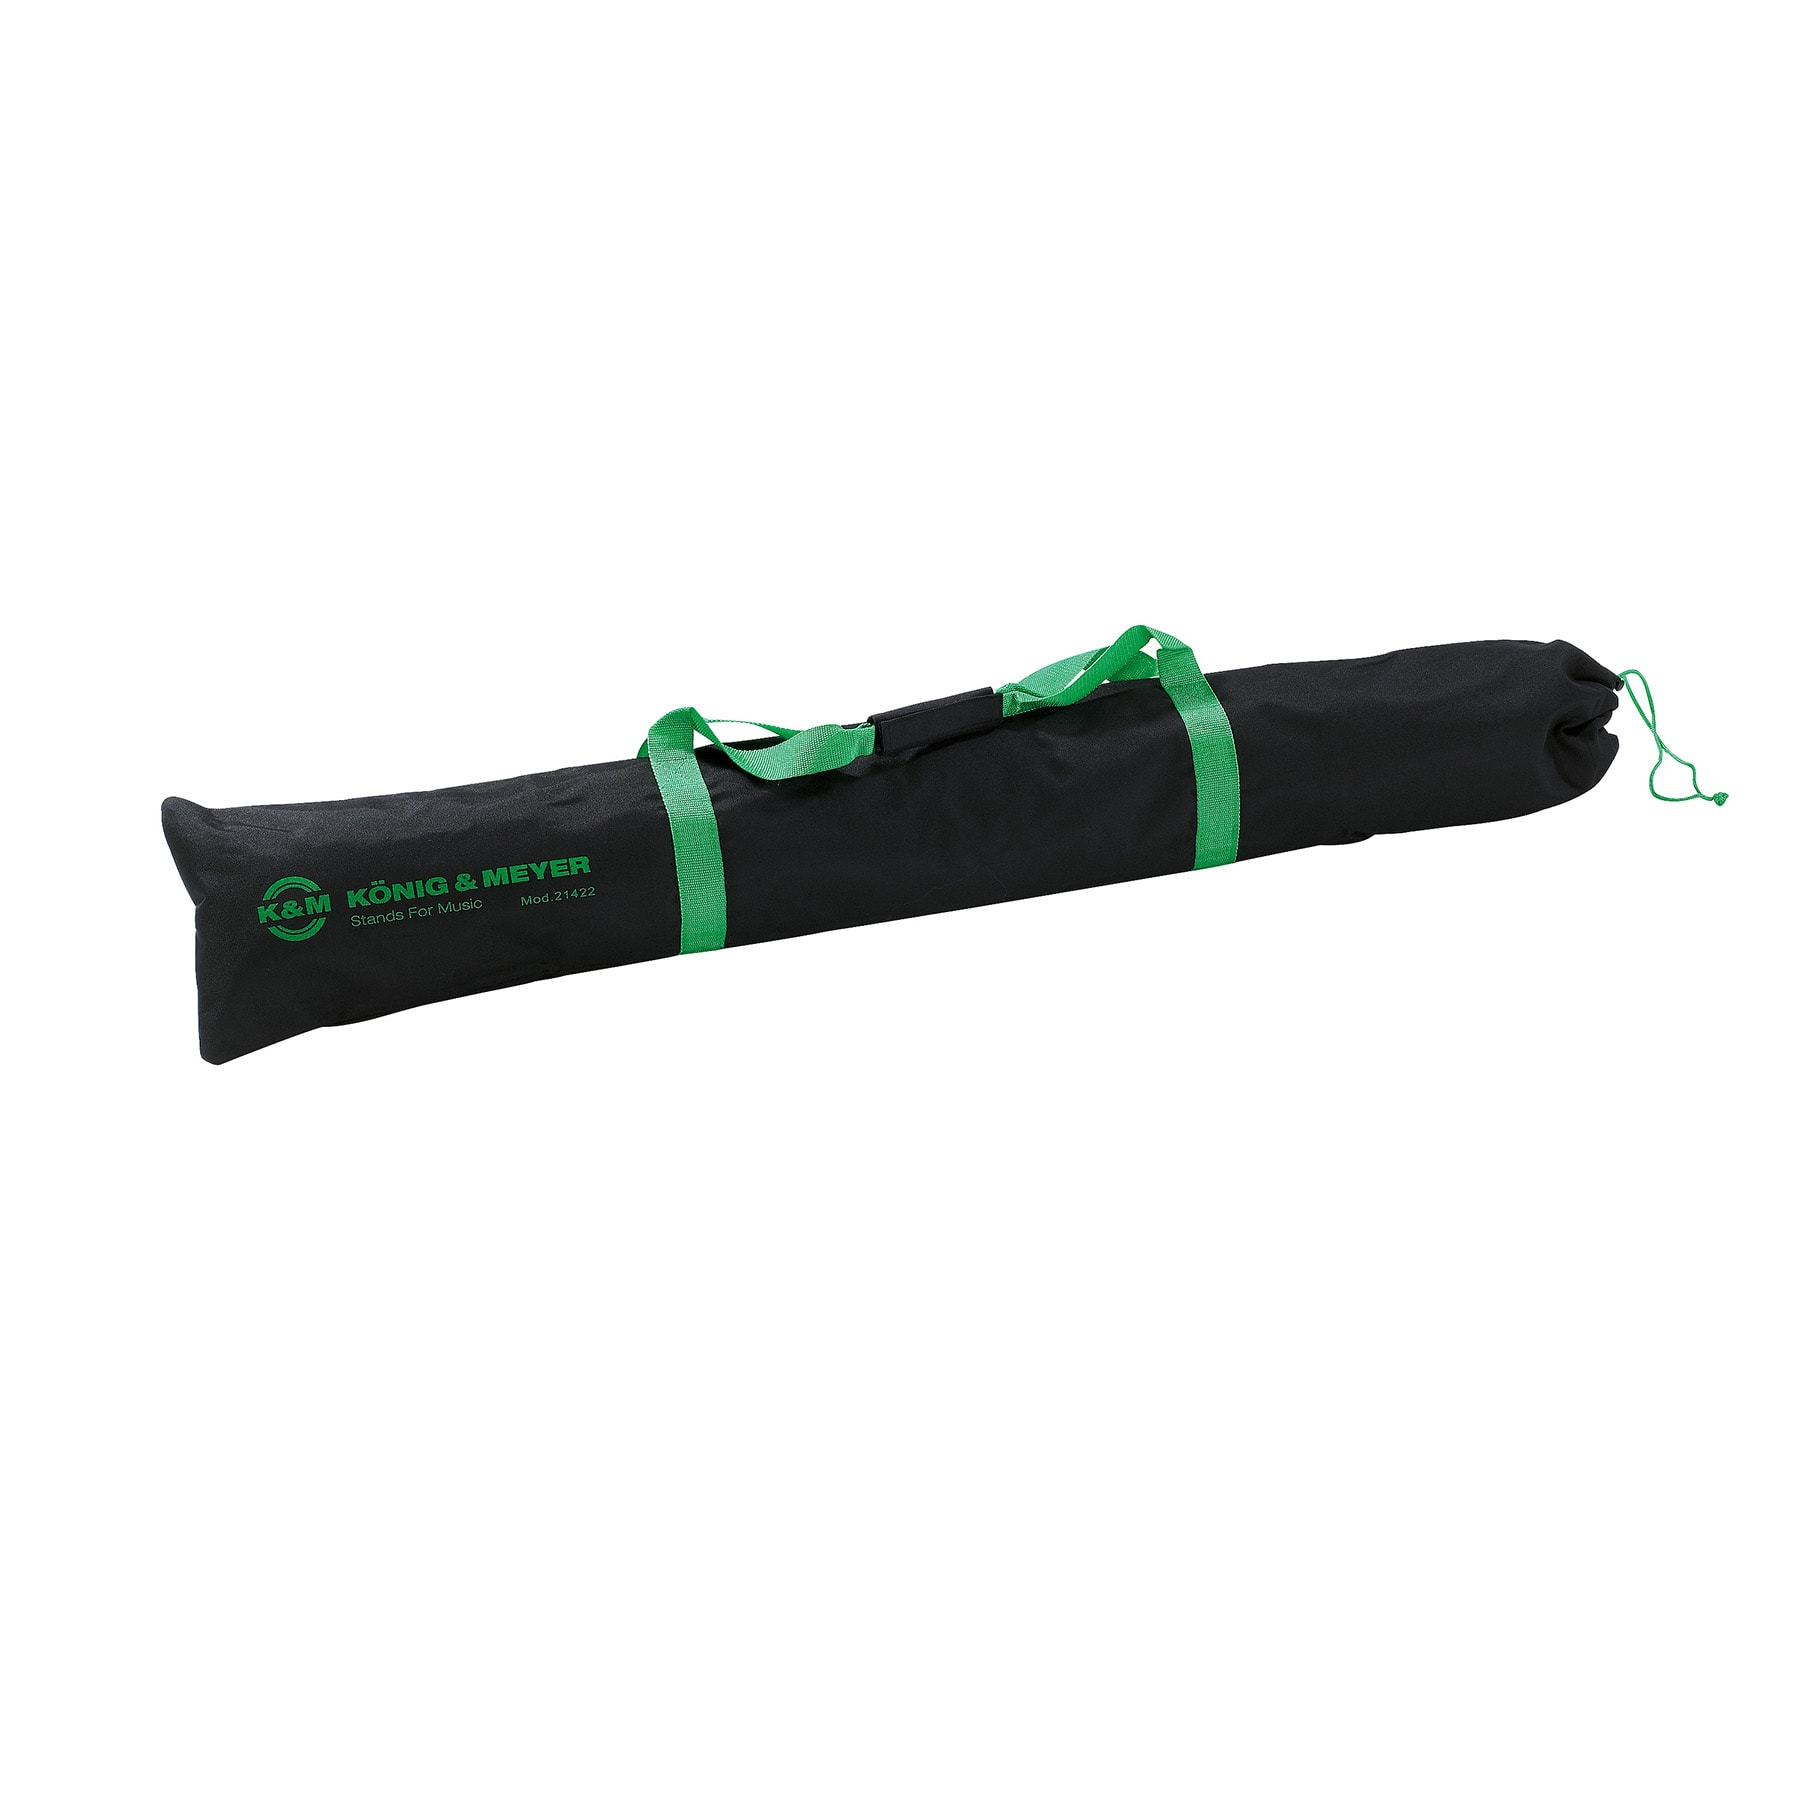 KM21422 - Carrying case for speaker stand